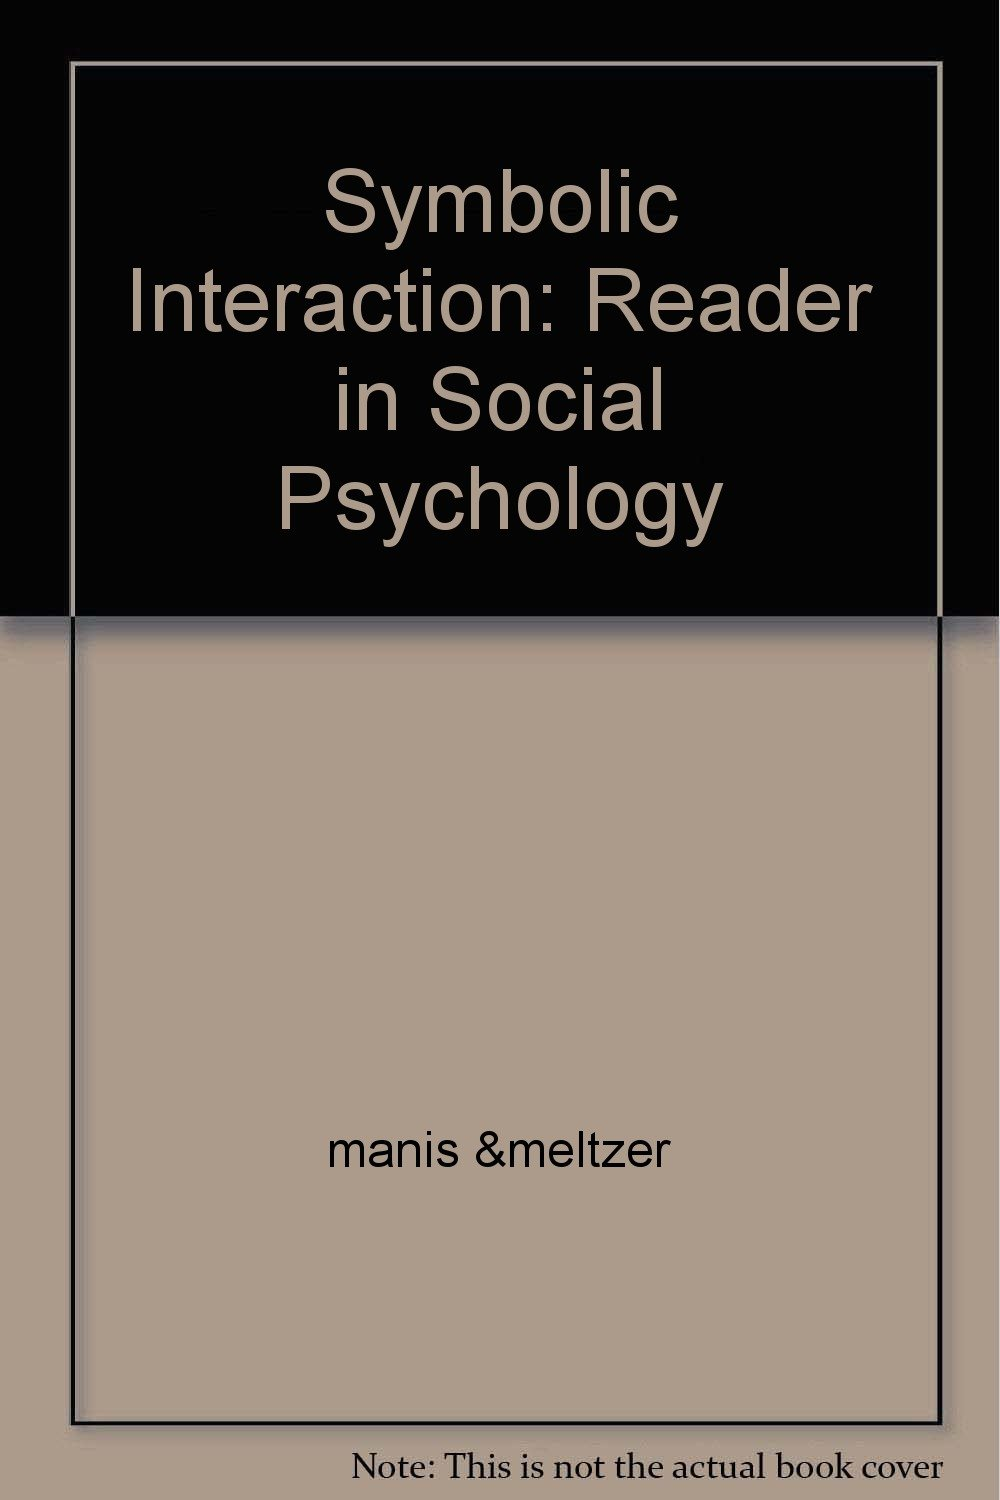 Symbolic Interaction A Reader In Social Psychology Manis Meltzer